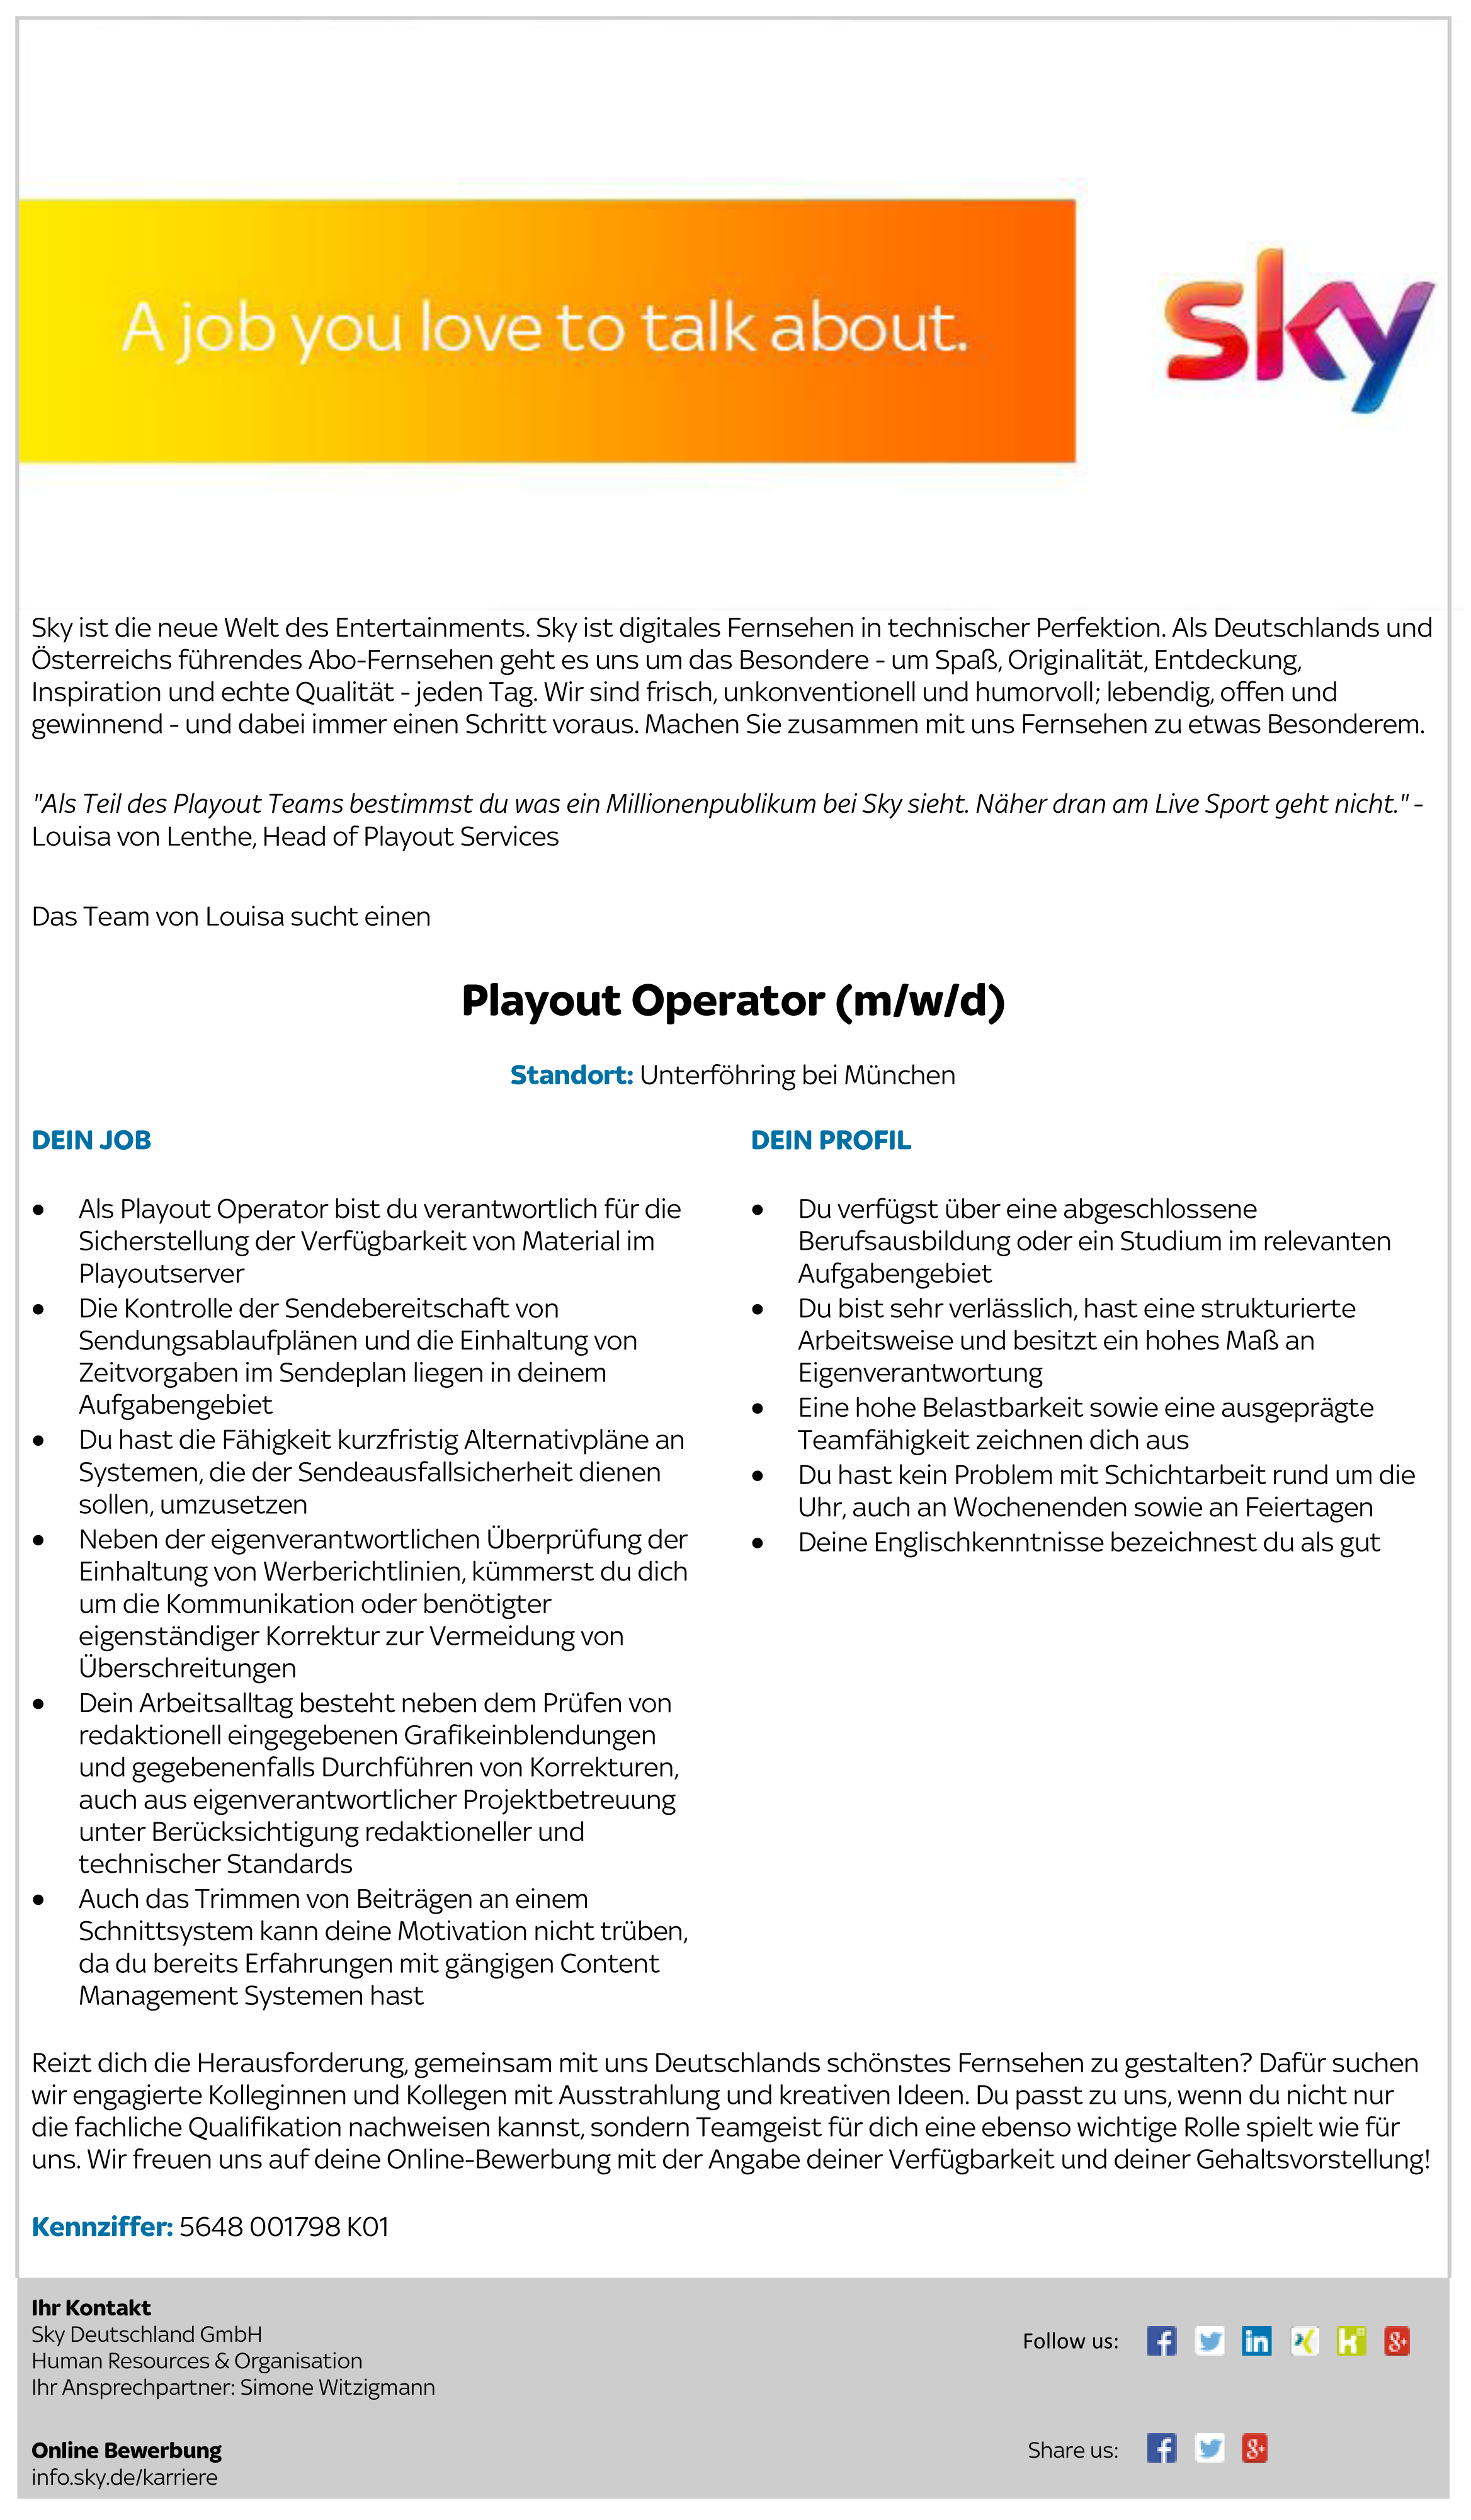 Playout Operator (m/w/d)